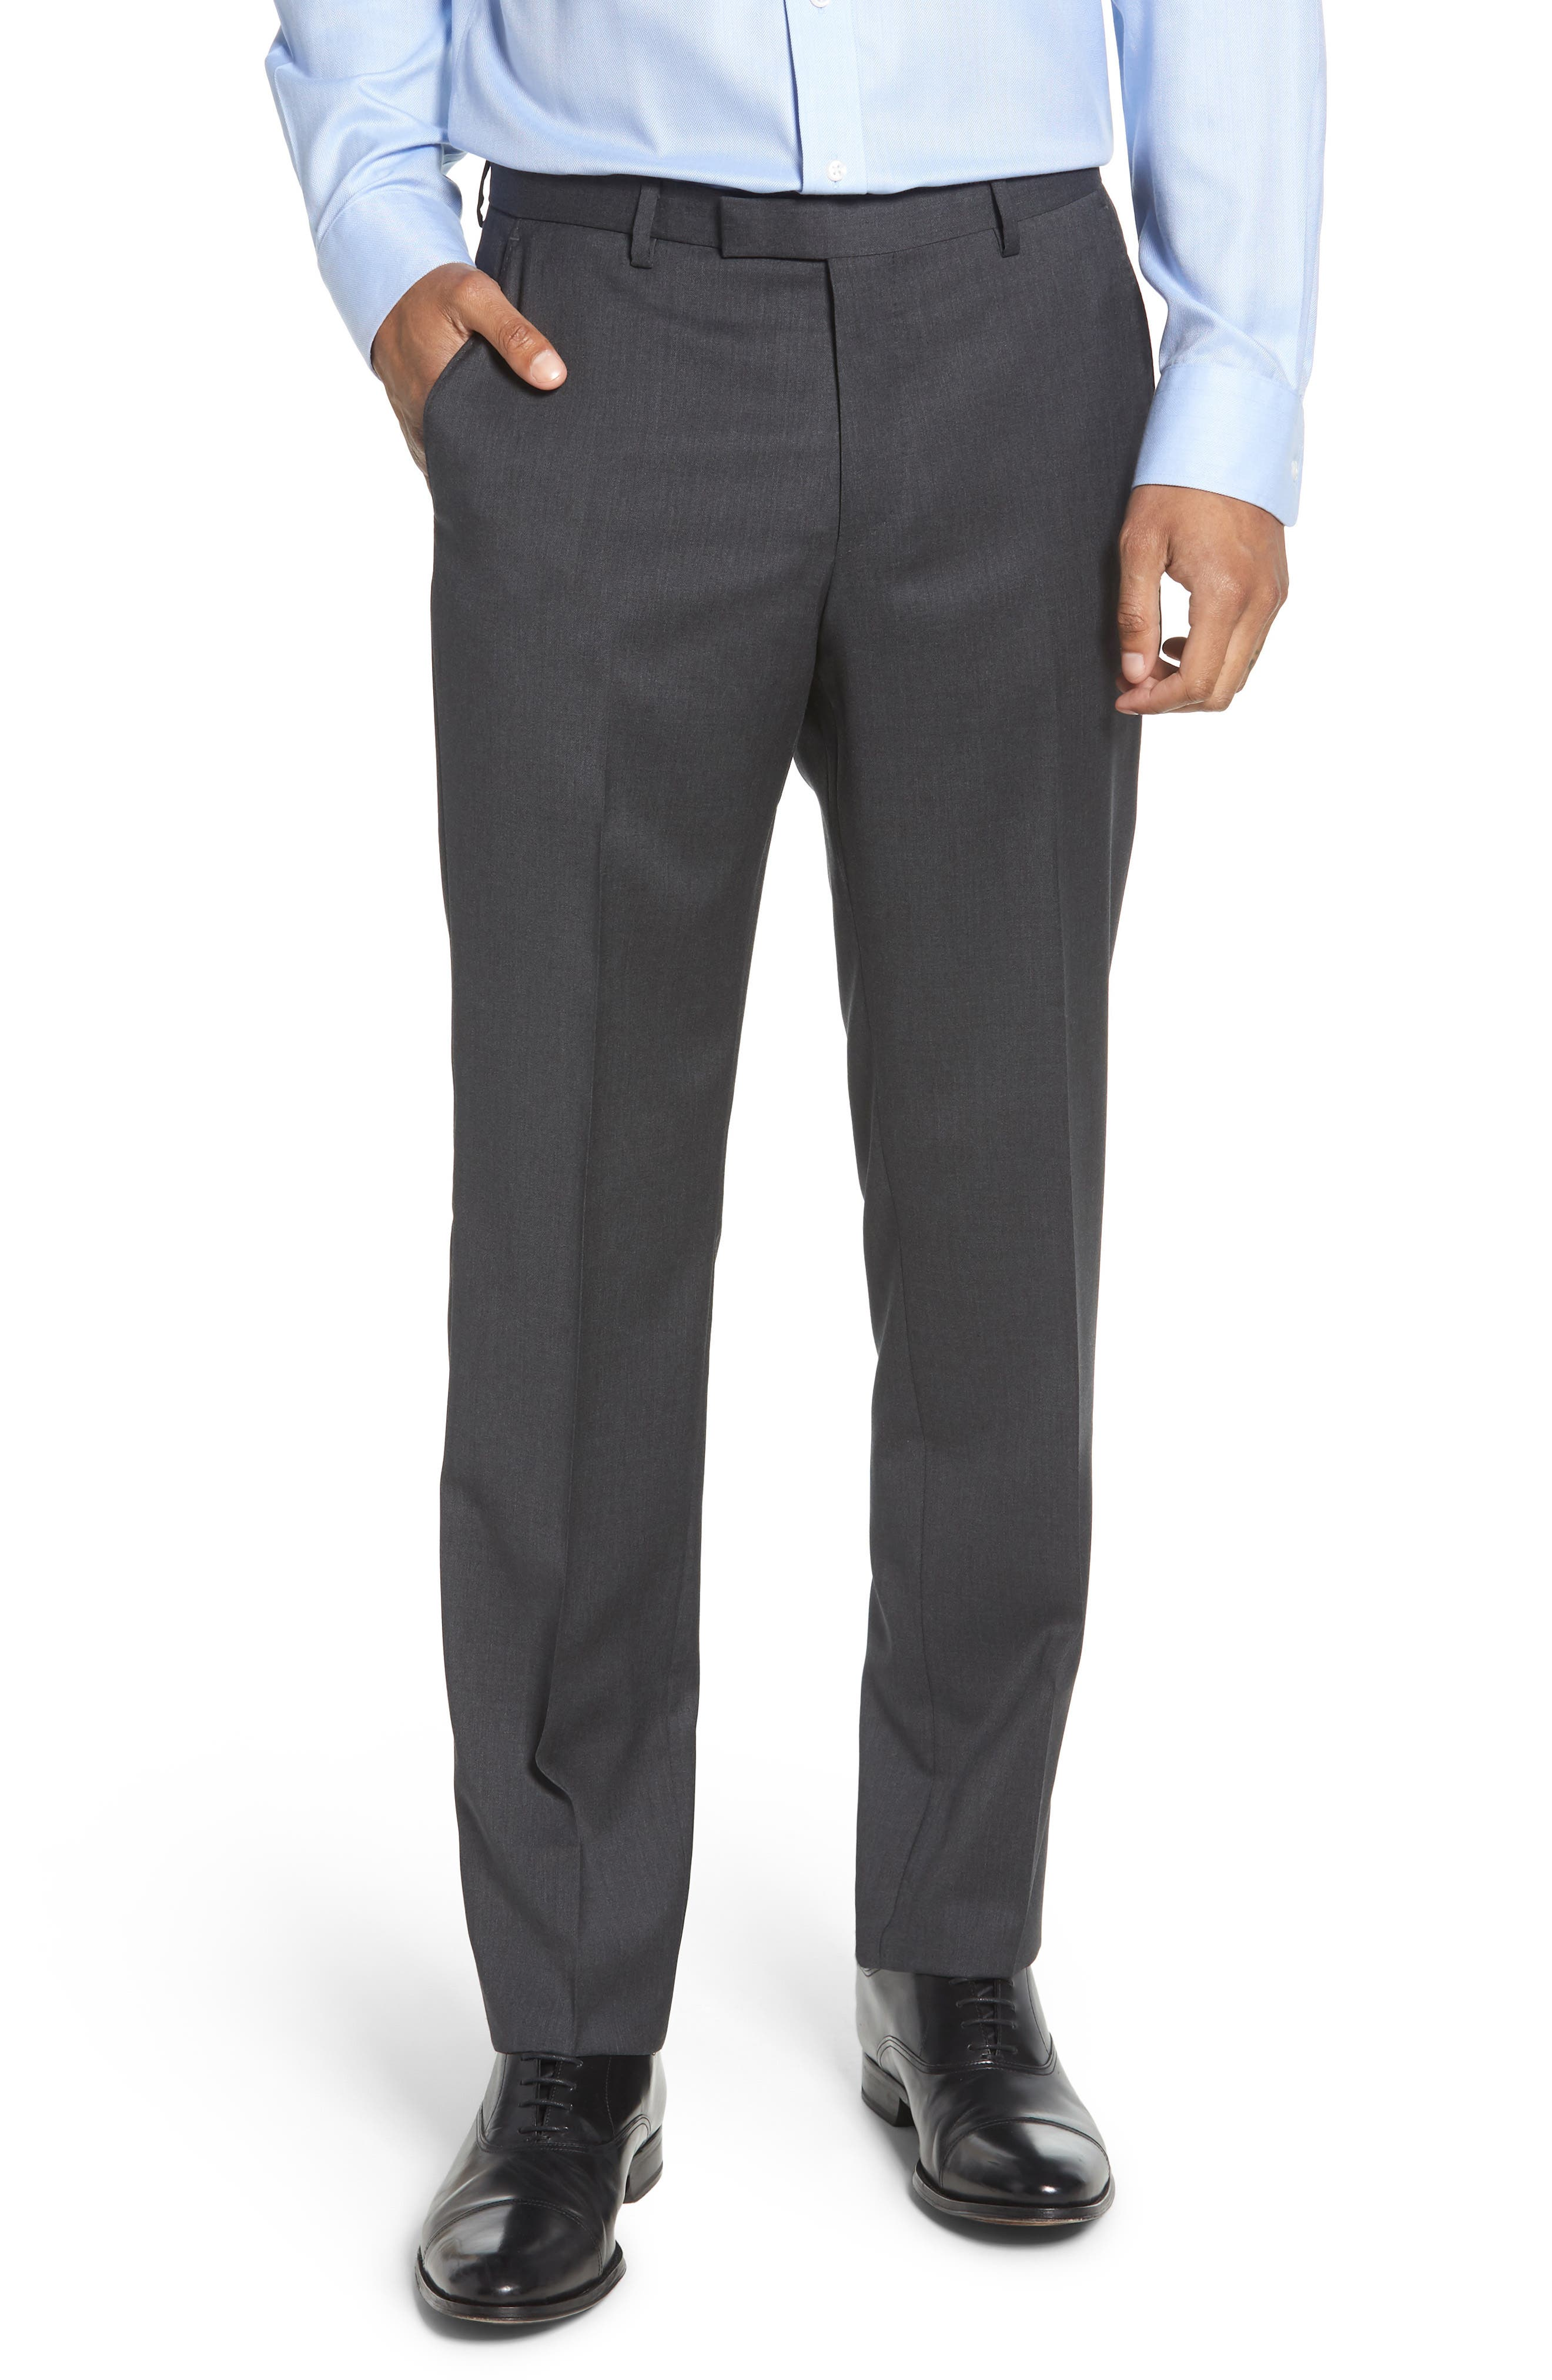 Leenon Flat Front Regular Fit Solid Wool Trousers,                             Main thumbnail 1, color,                             CHARCOAL